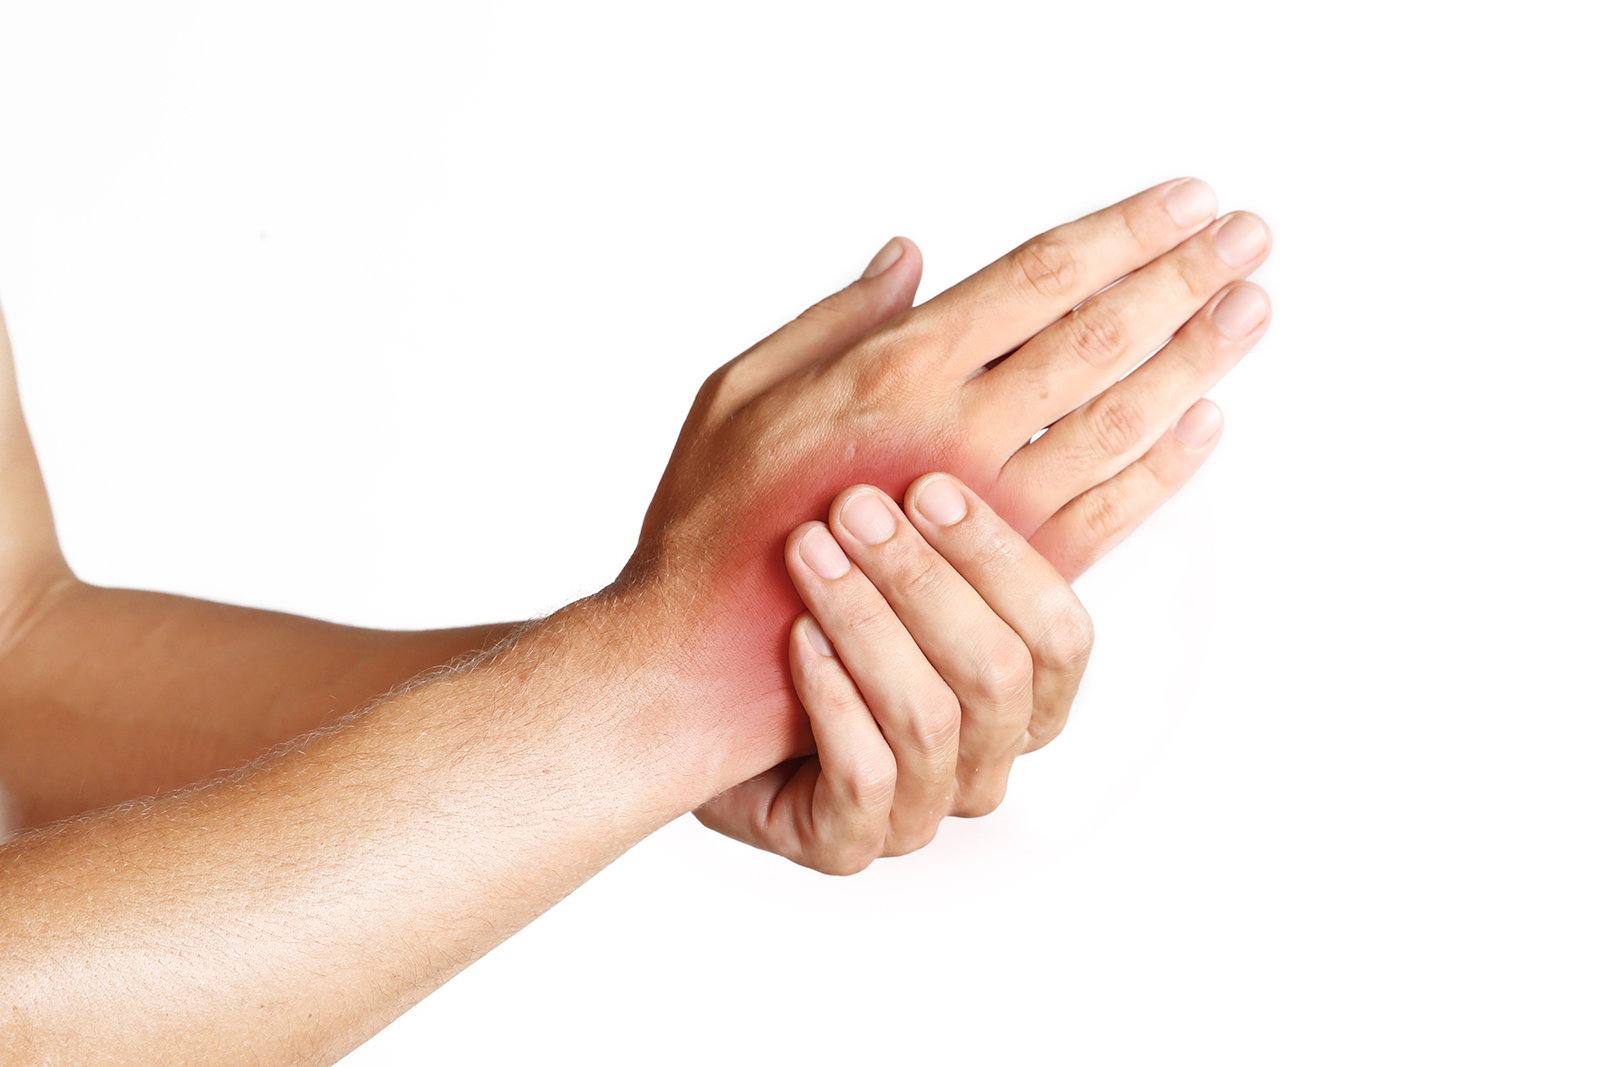 person holding hand that is in pain